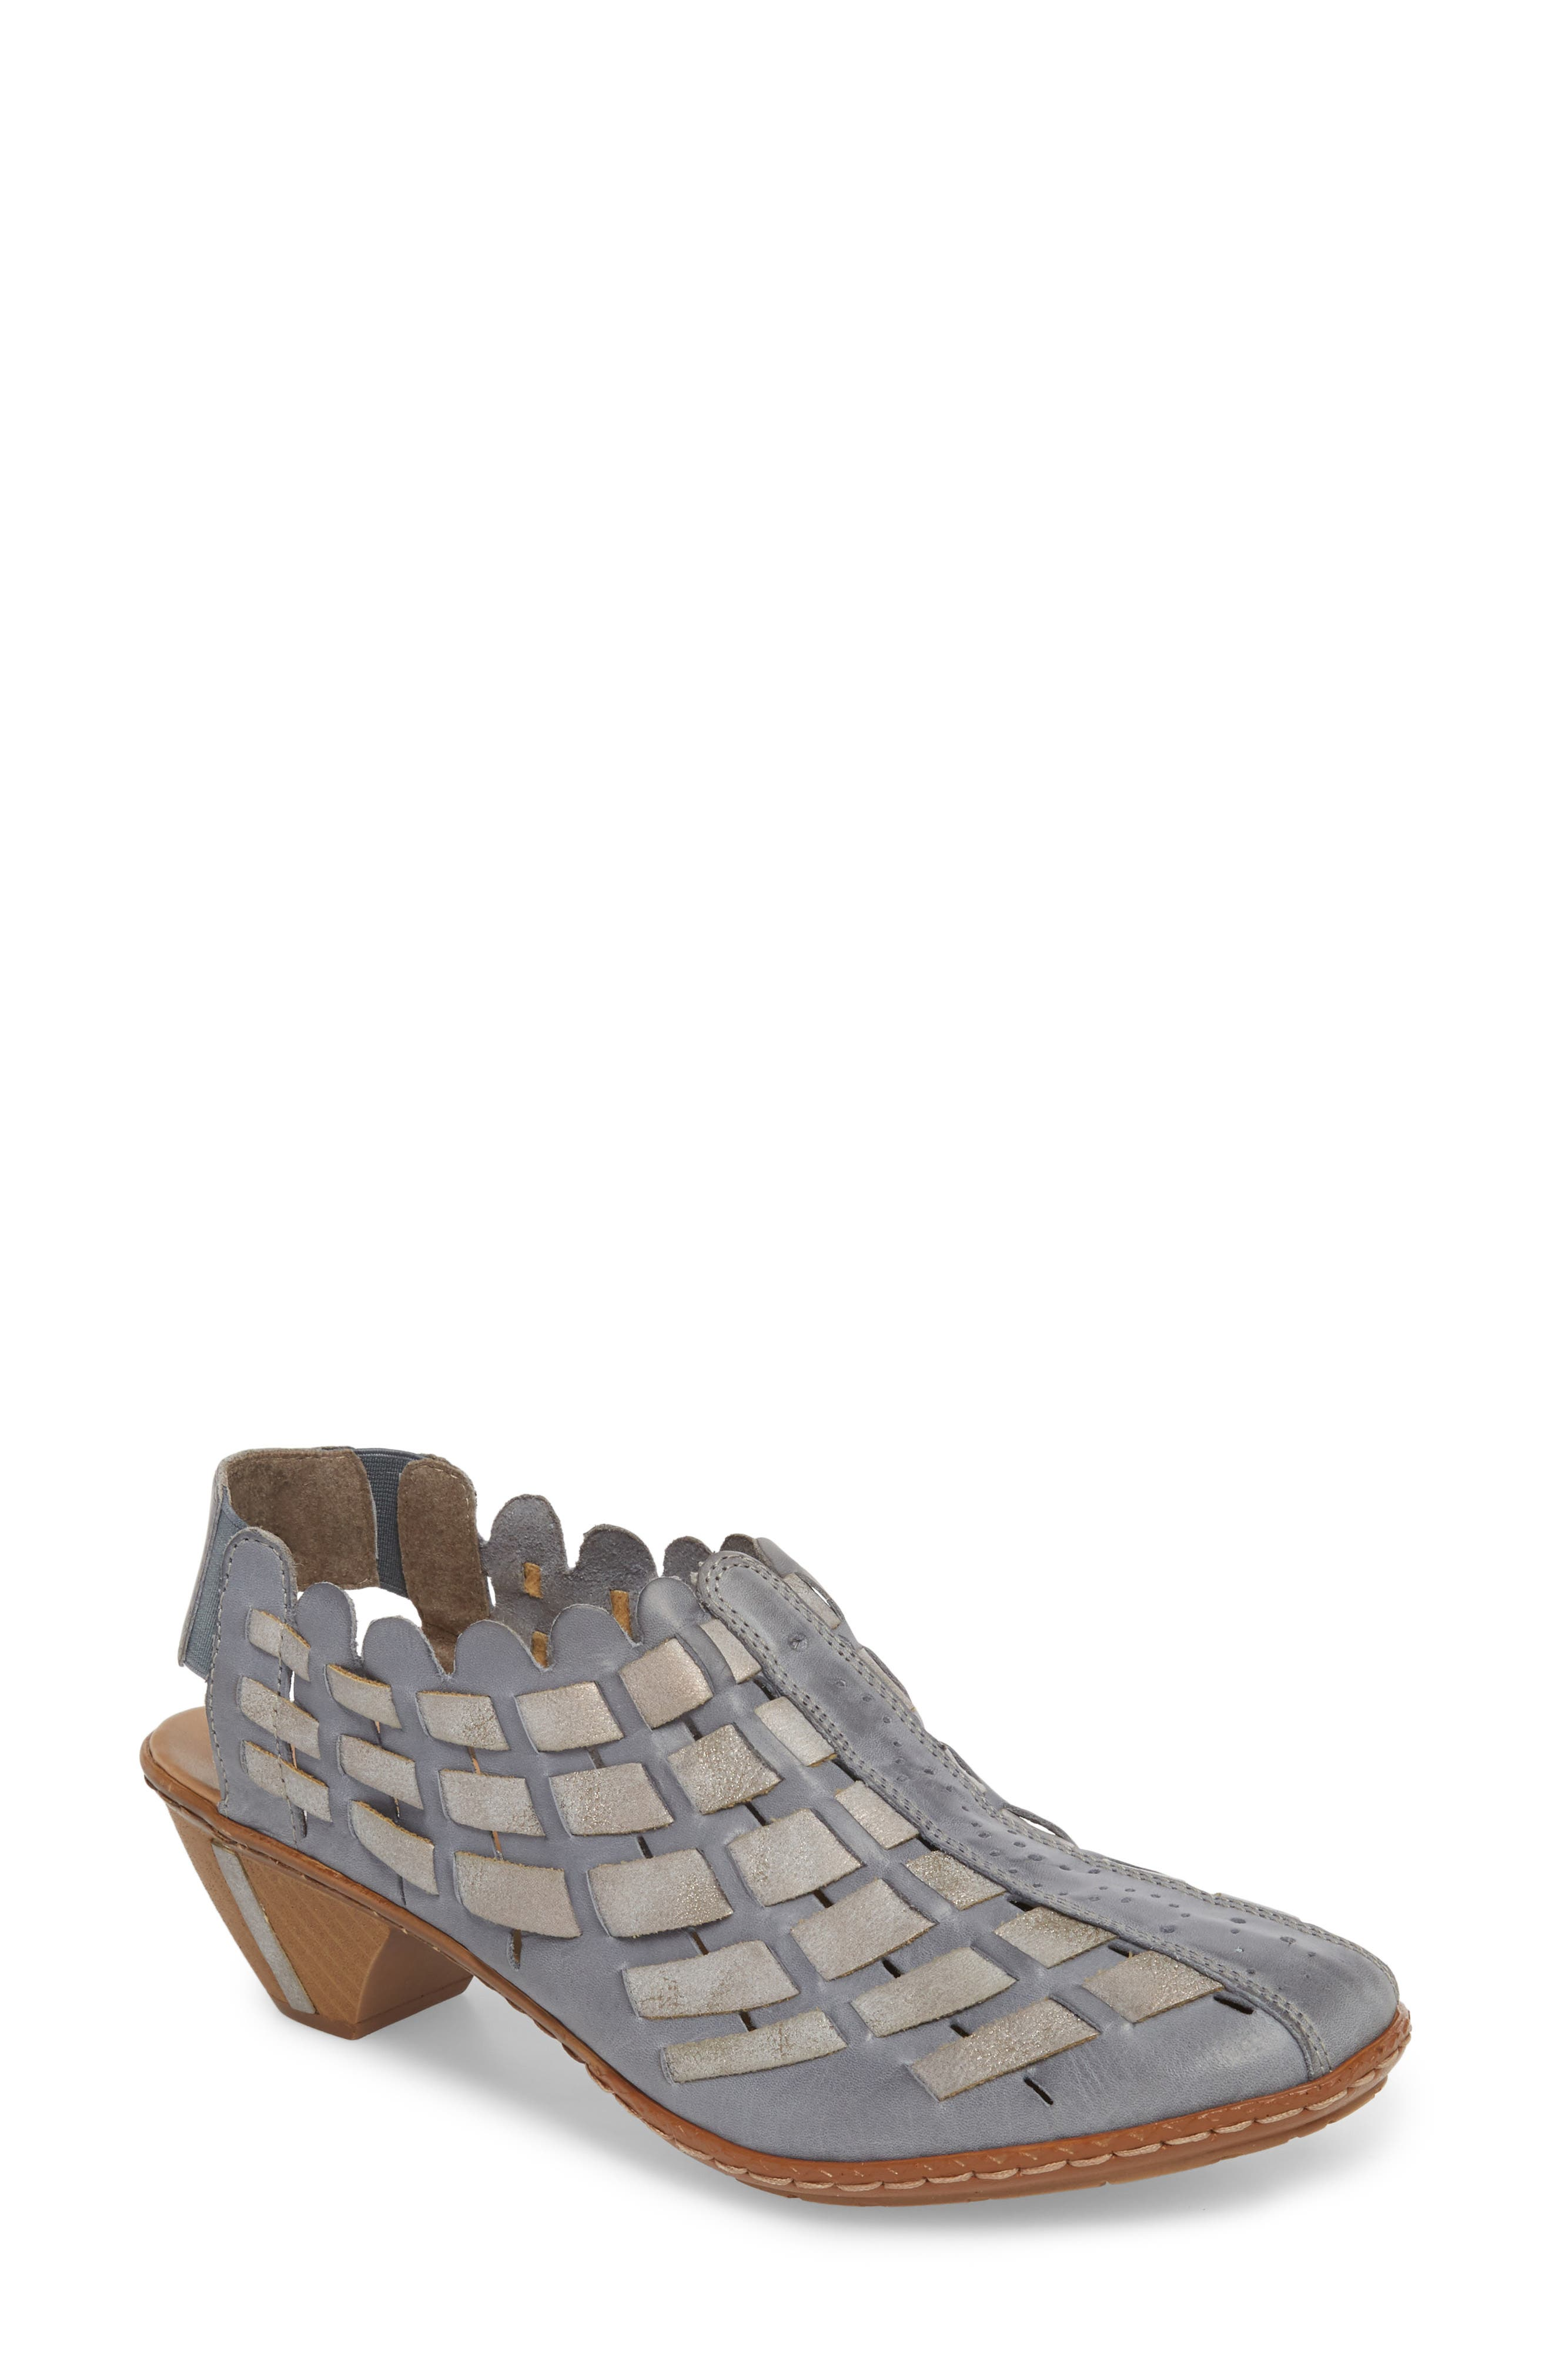 'Sina' Woven Bootie,                             Main thumbnail 1, color,                             AZUR GREY LEATHER